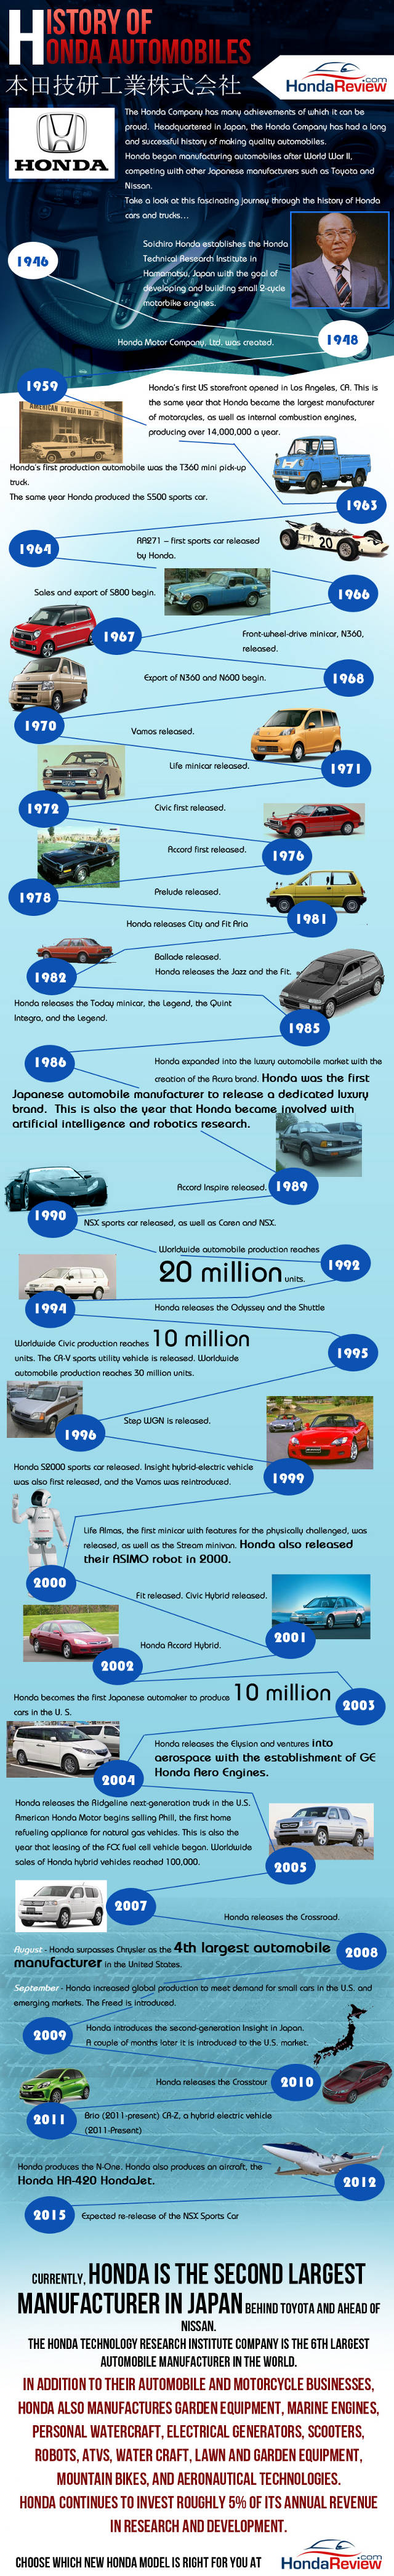 The History of Honda